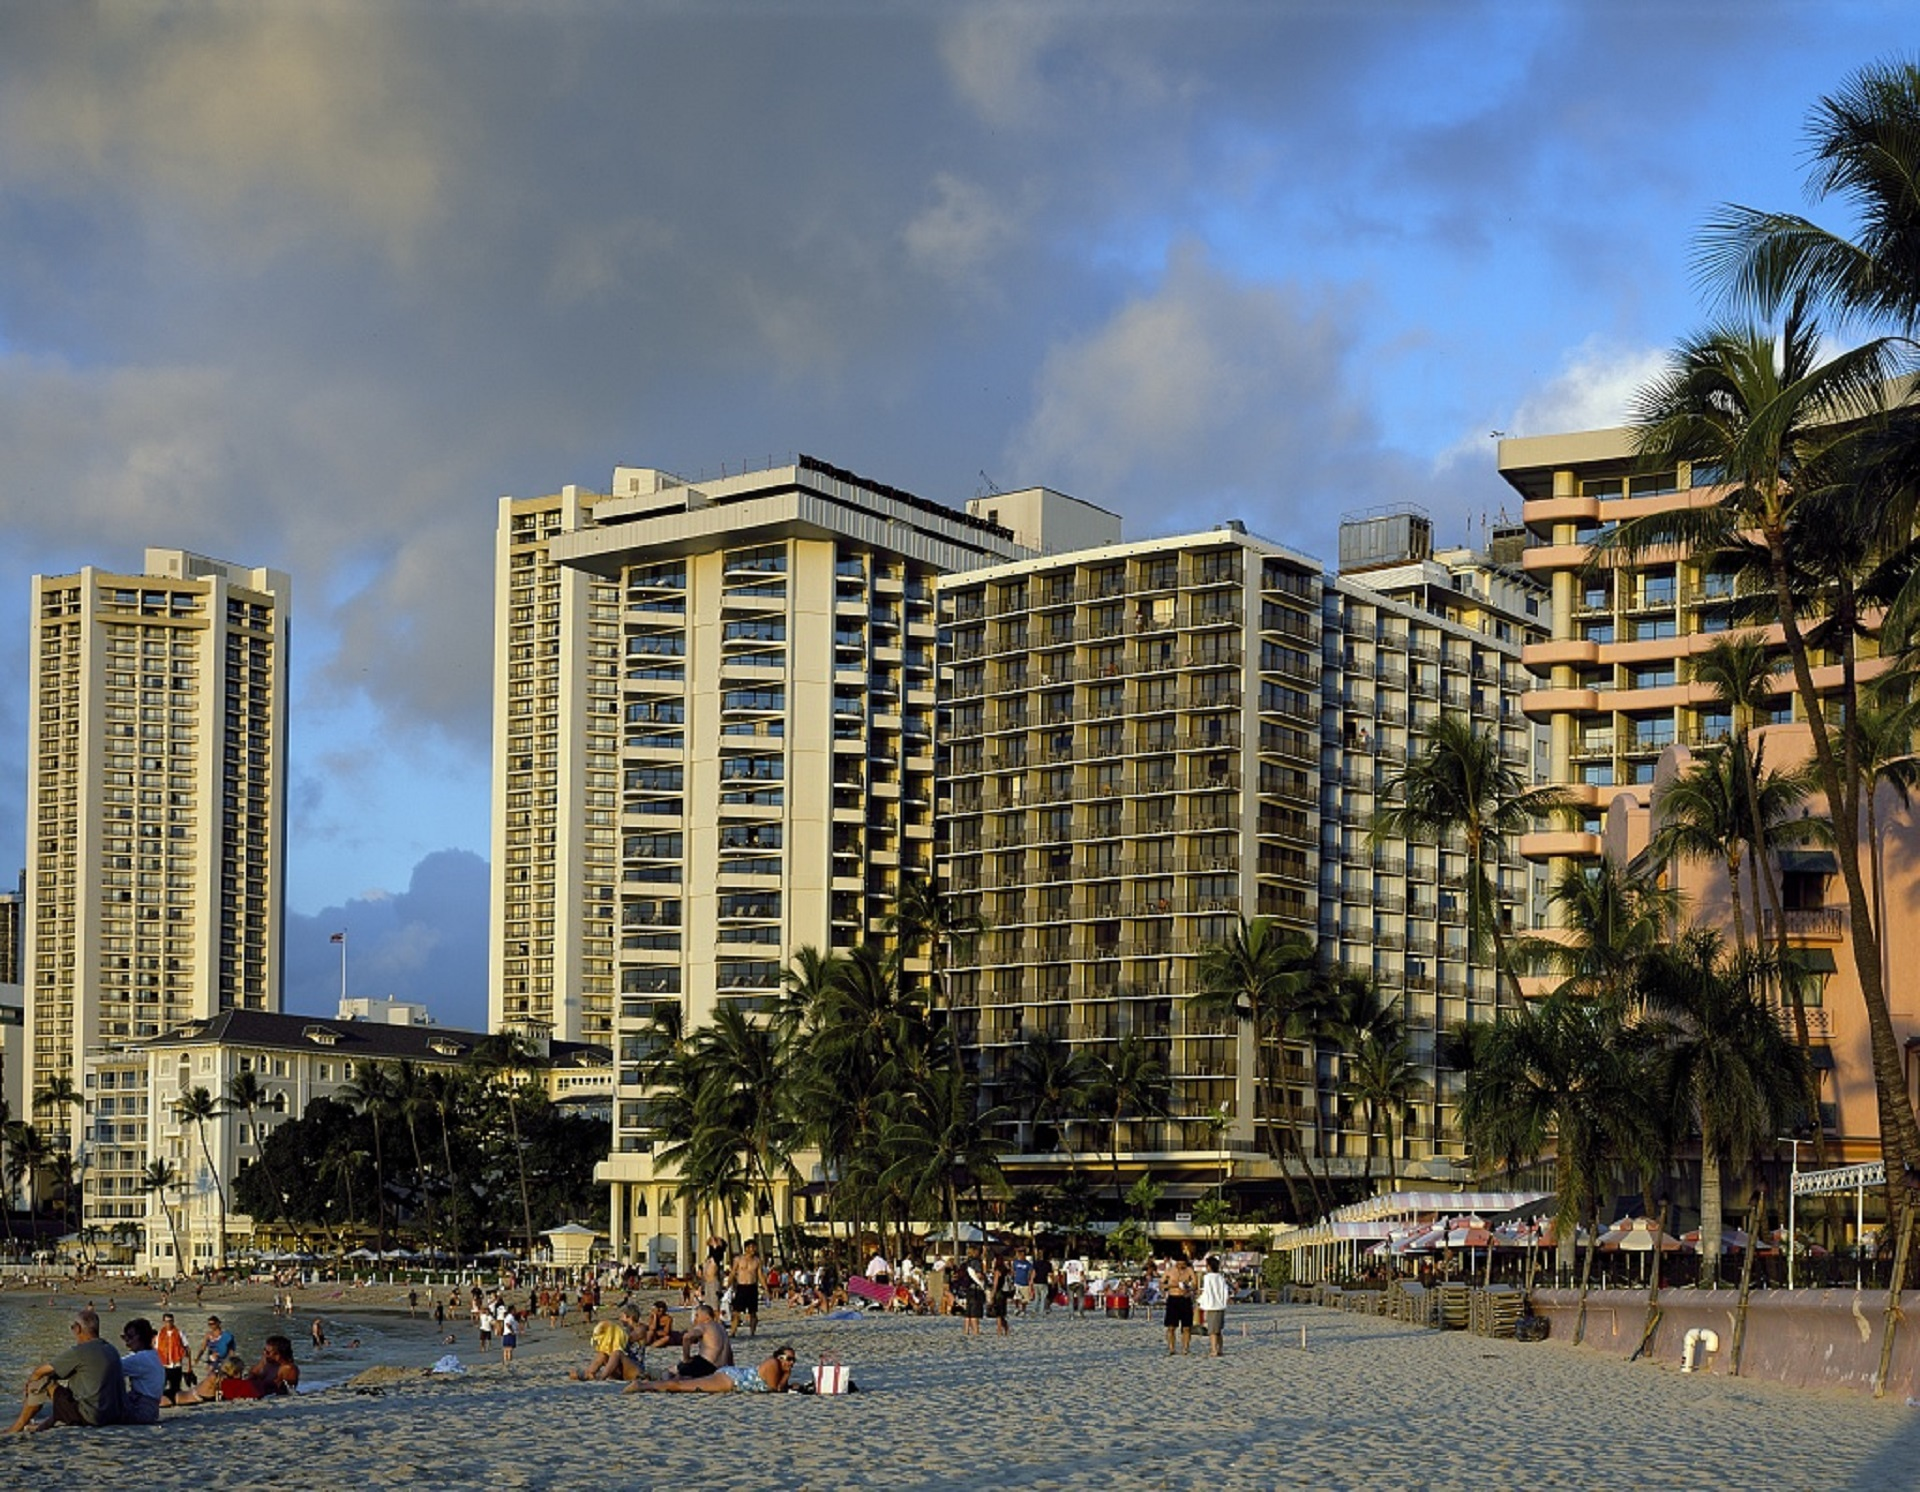 Hotels on the shore photo